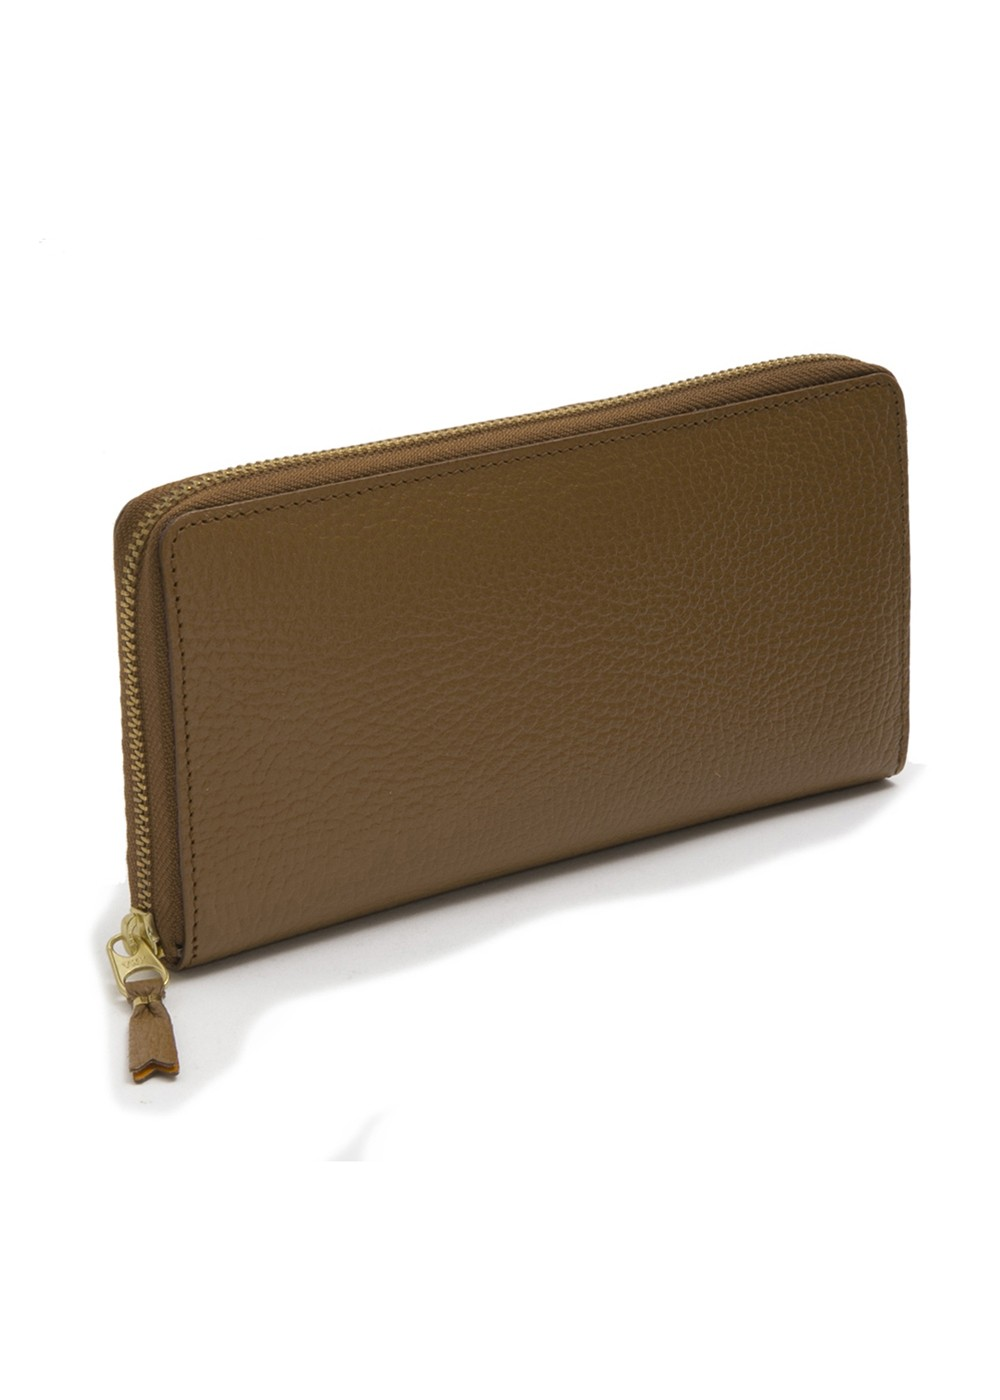 【最大69%OFF】COLOUR INSIDE WALLET 長財布|BROWN/ORANGE|レディース財布|COMME des GARCONS_(TI)